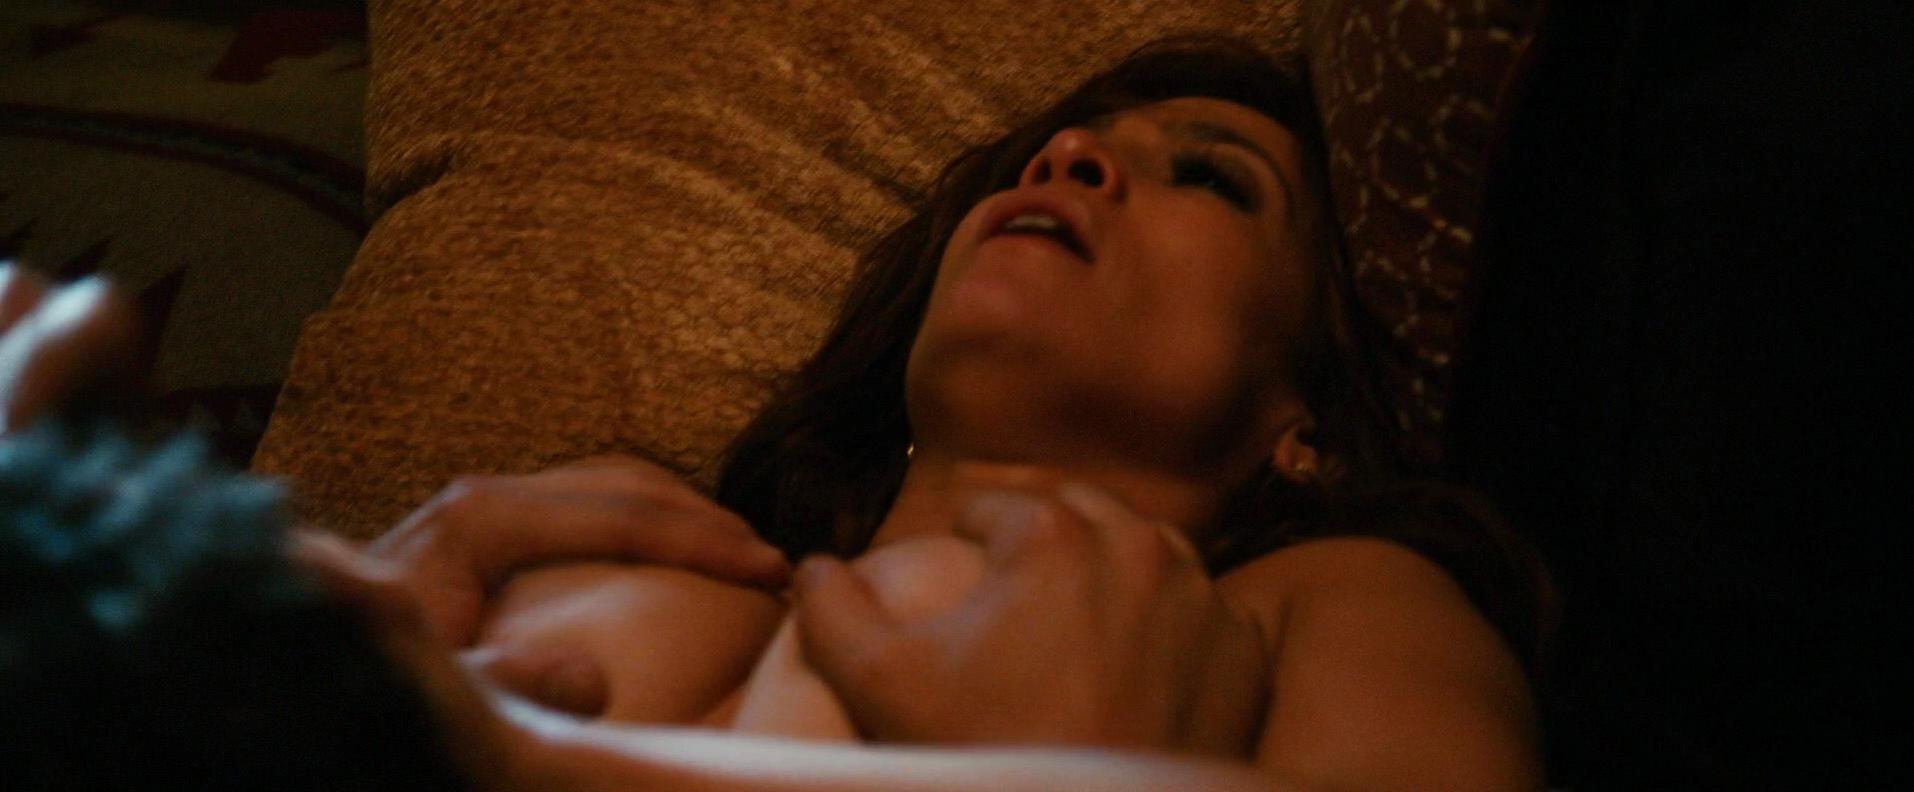 jennifer-lopez-sex-scene-in-u-turn